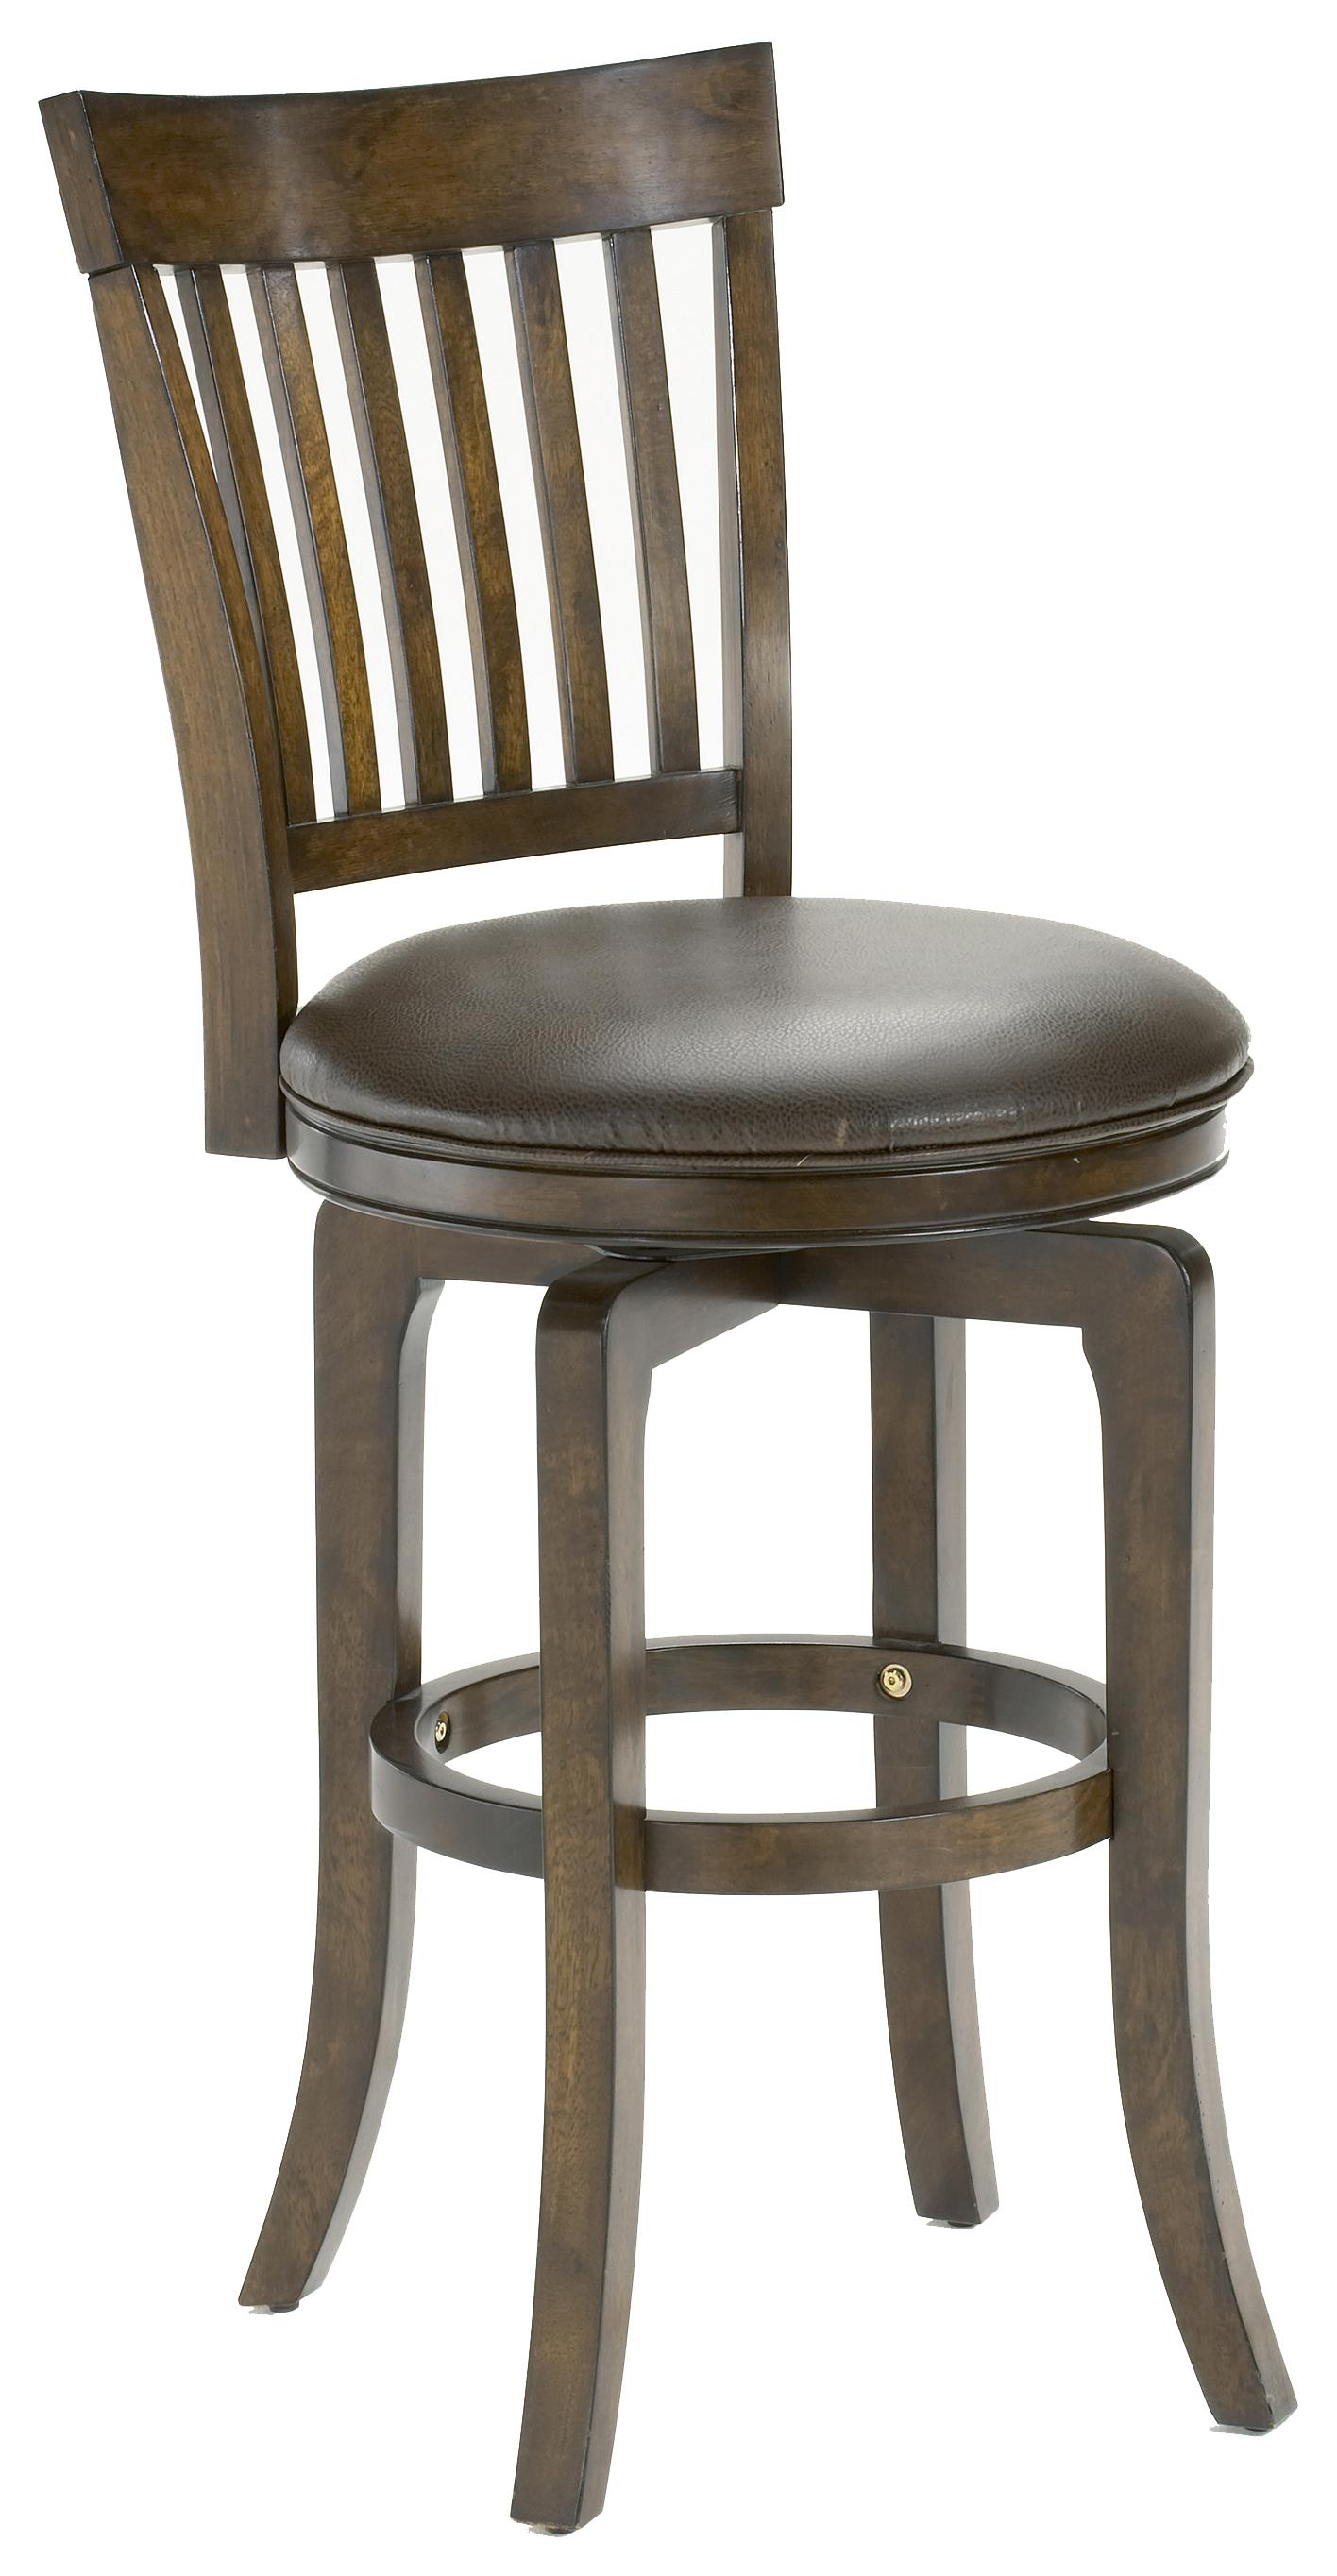 "Hillsdale Wood Stools 24"" Counter Height Arbor Hill Swivel Stool - Item Number: 4232-824"